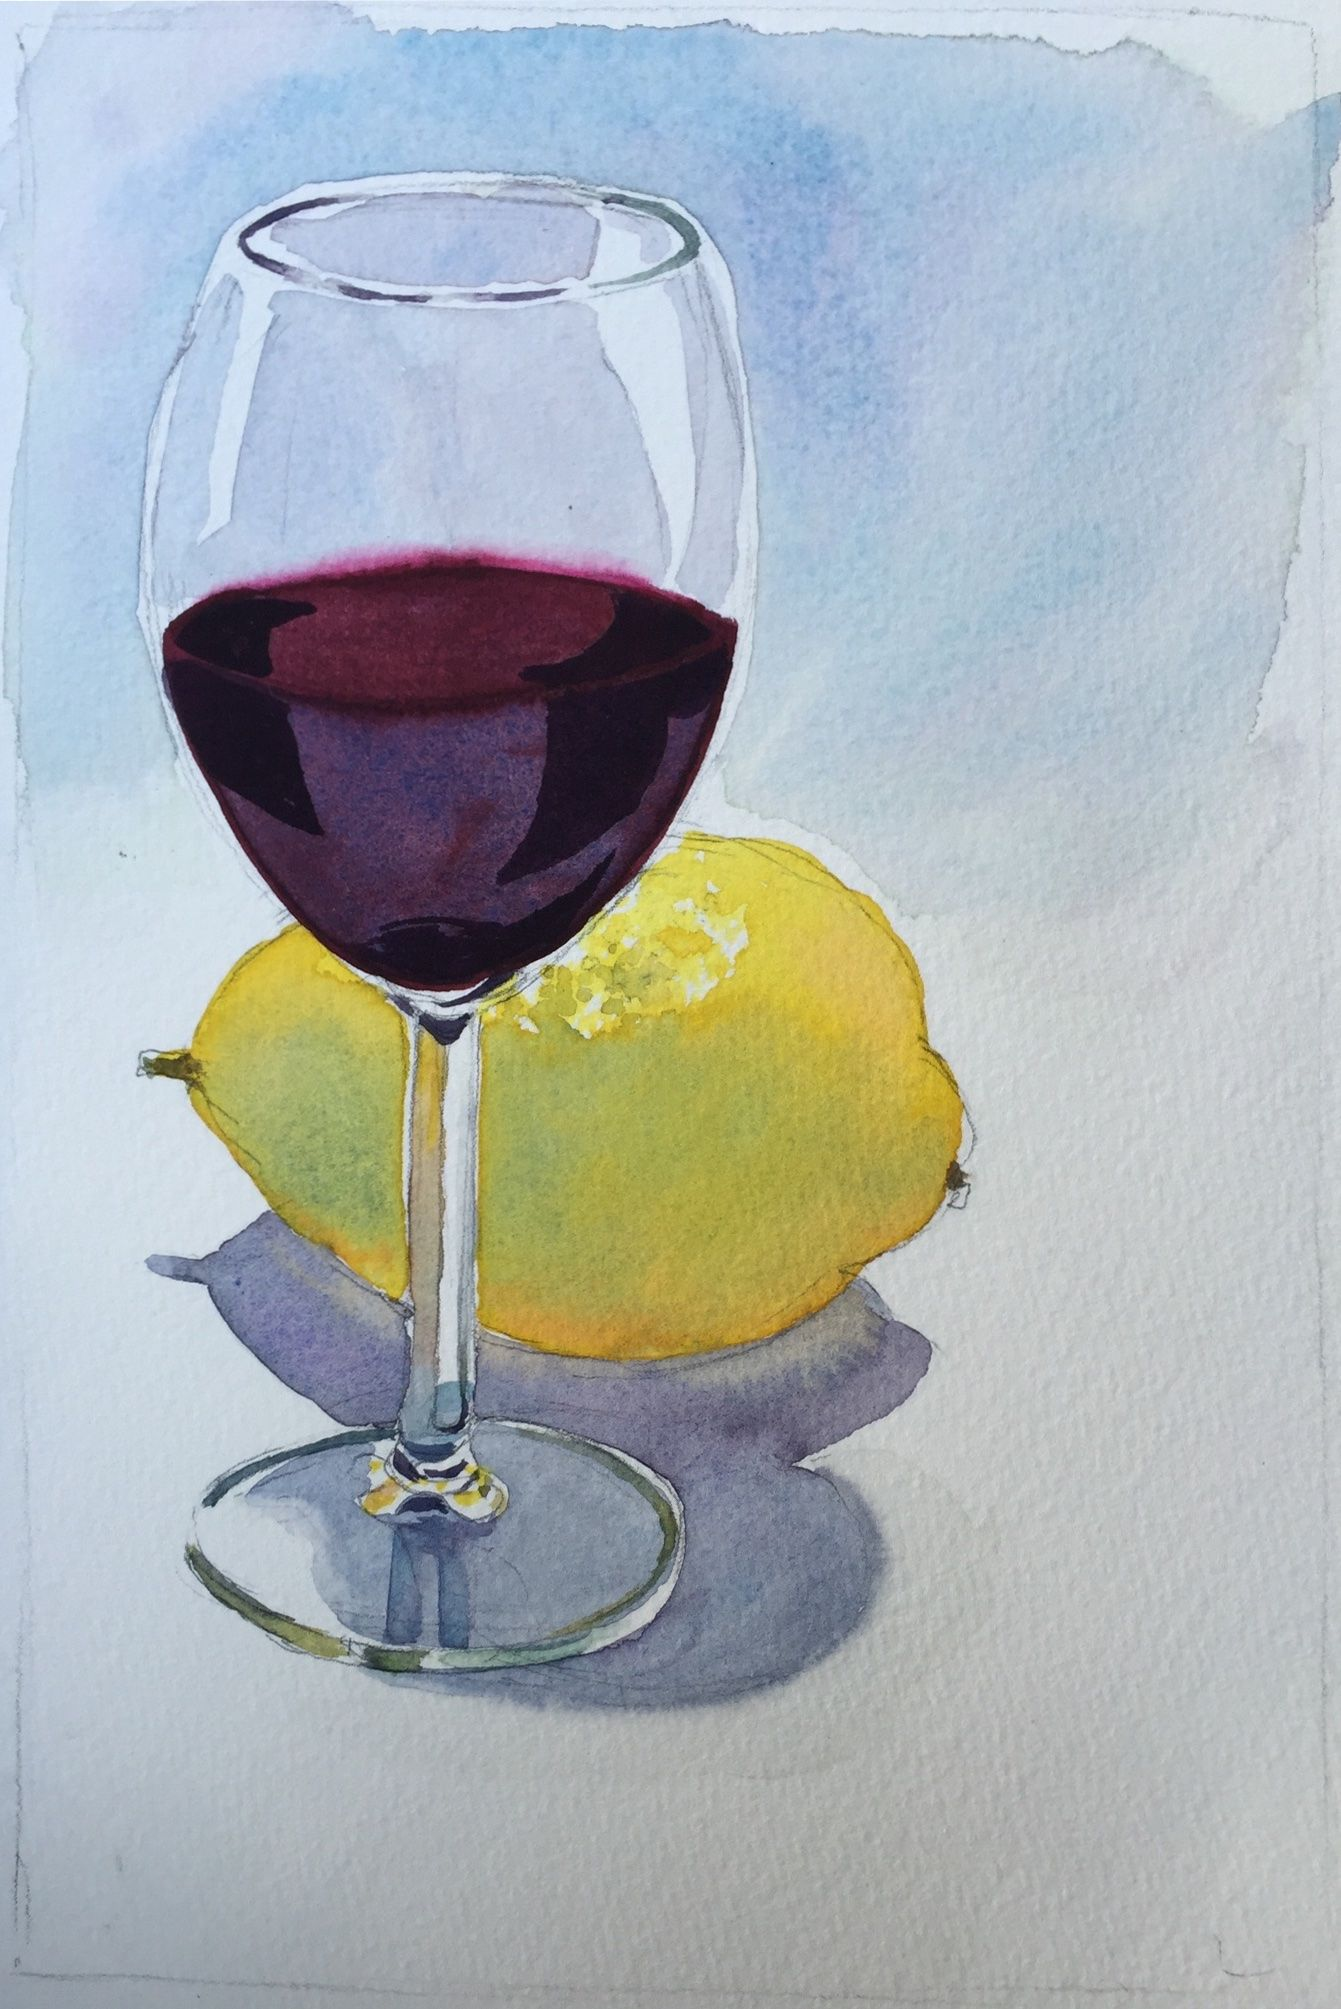 Watercolor Techniques For Painting Liquid Glass In A Still Life